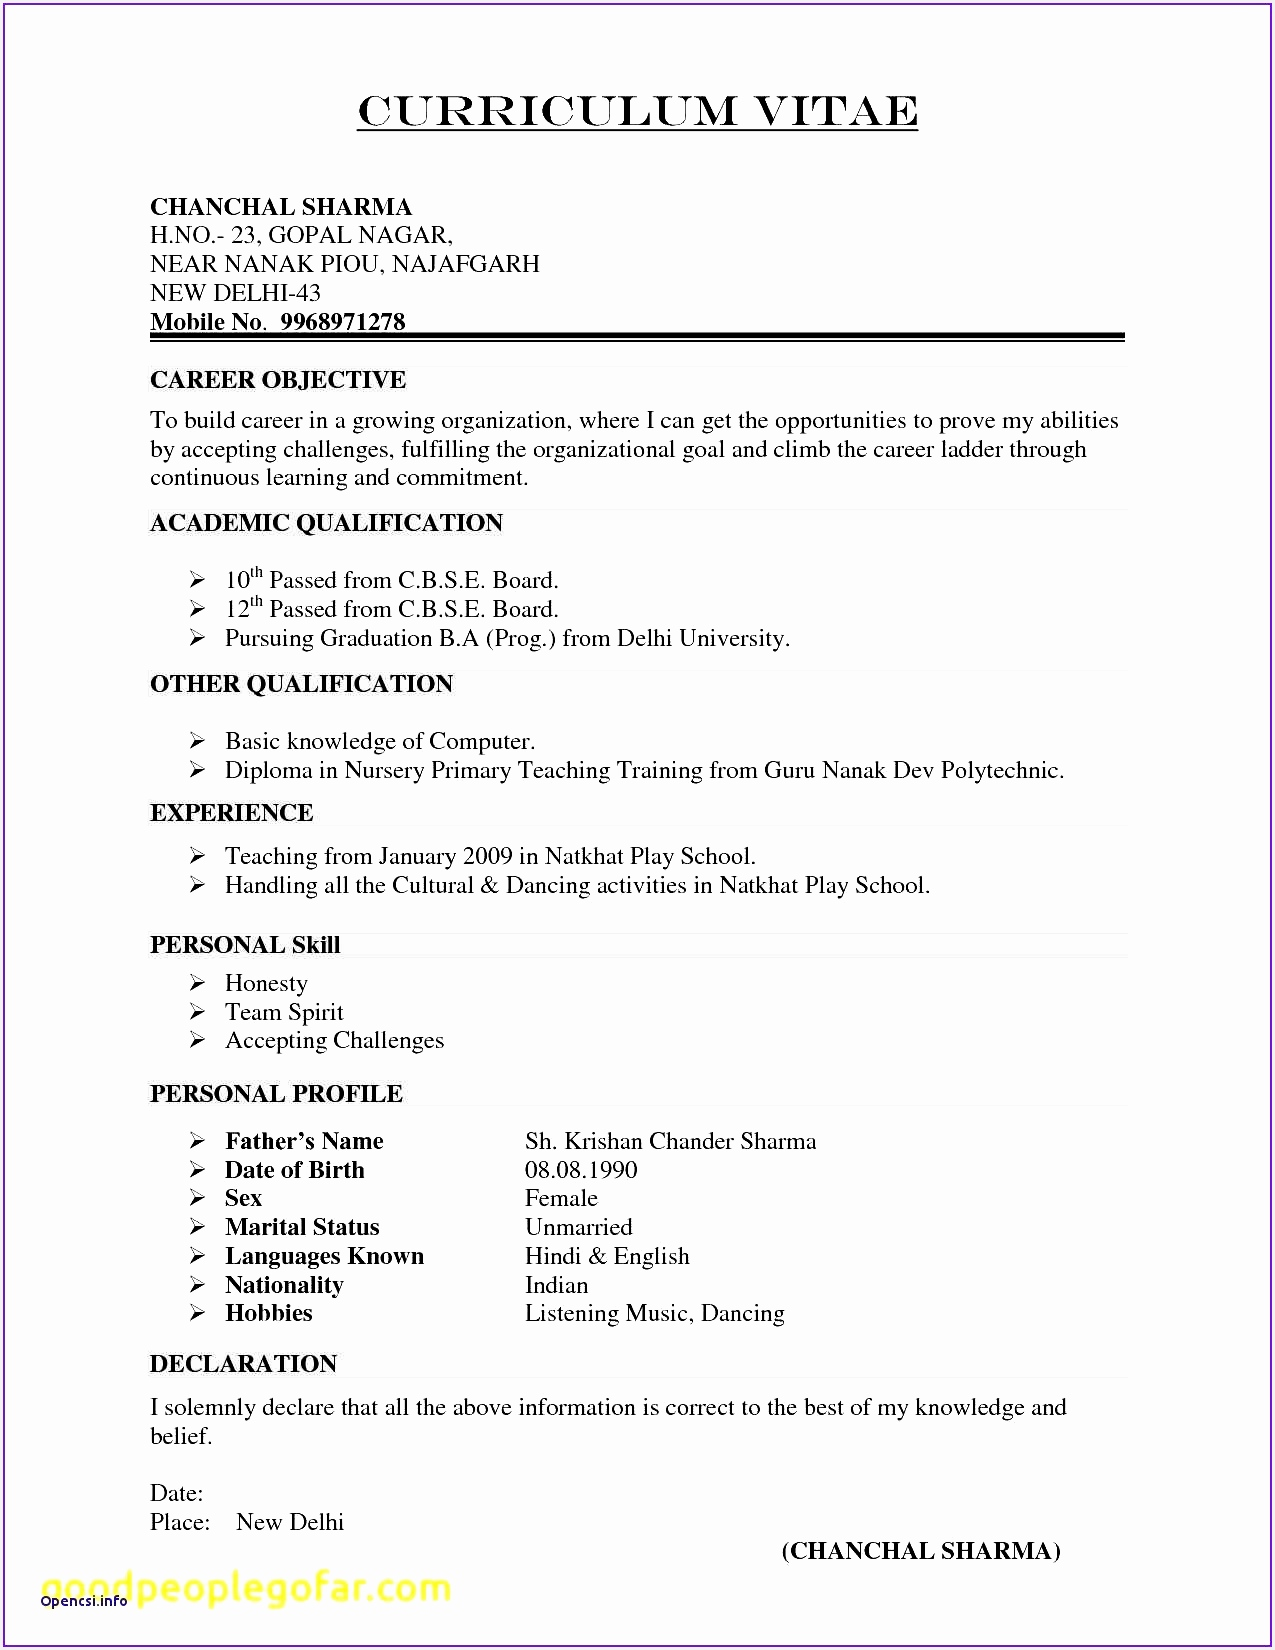 Job Resume Templates Word Elegant Resume Template Word New Resume Template Doc New Resume Doc 0d16501275